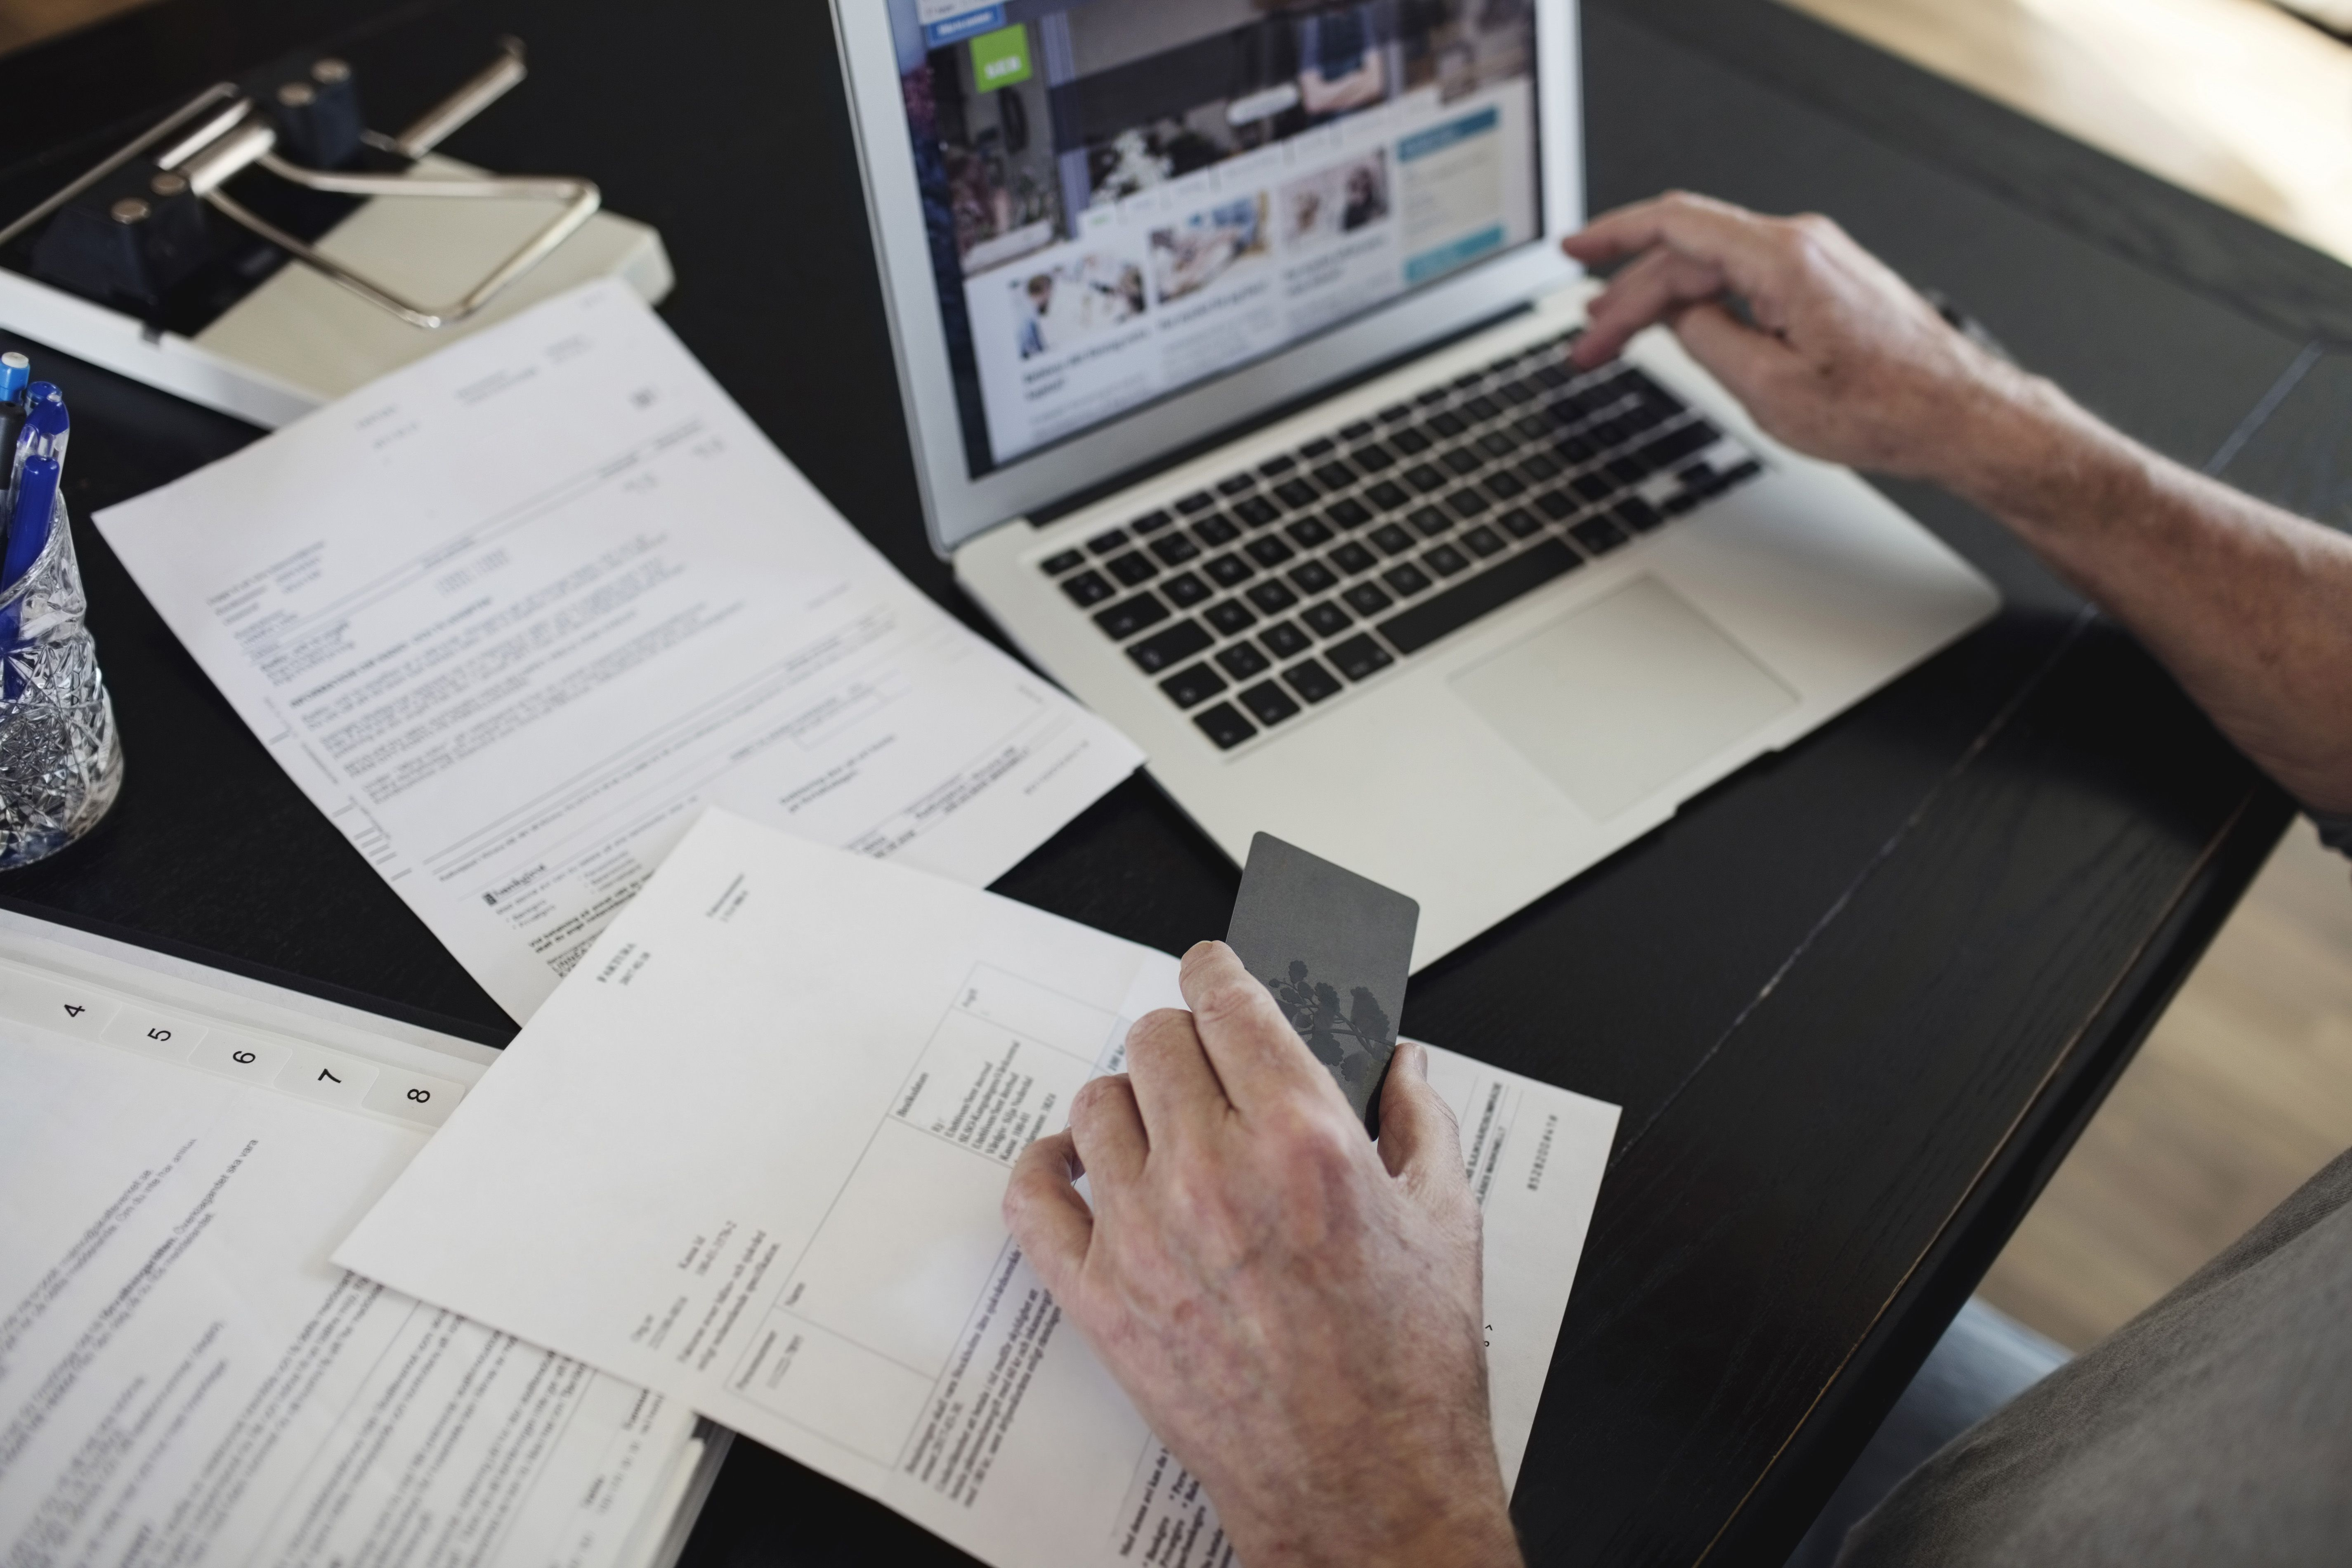 Close-up of a man's hands doing paperwork and paying bills on a laptop